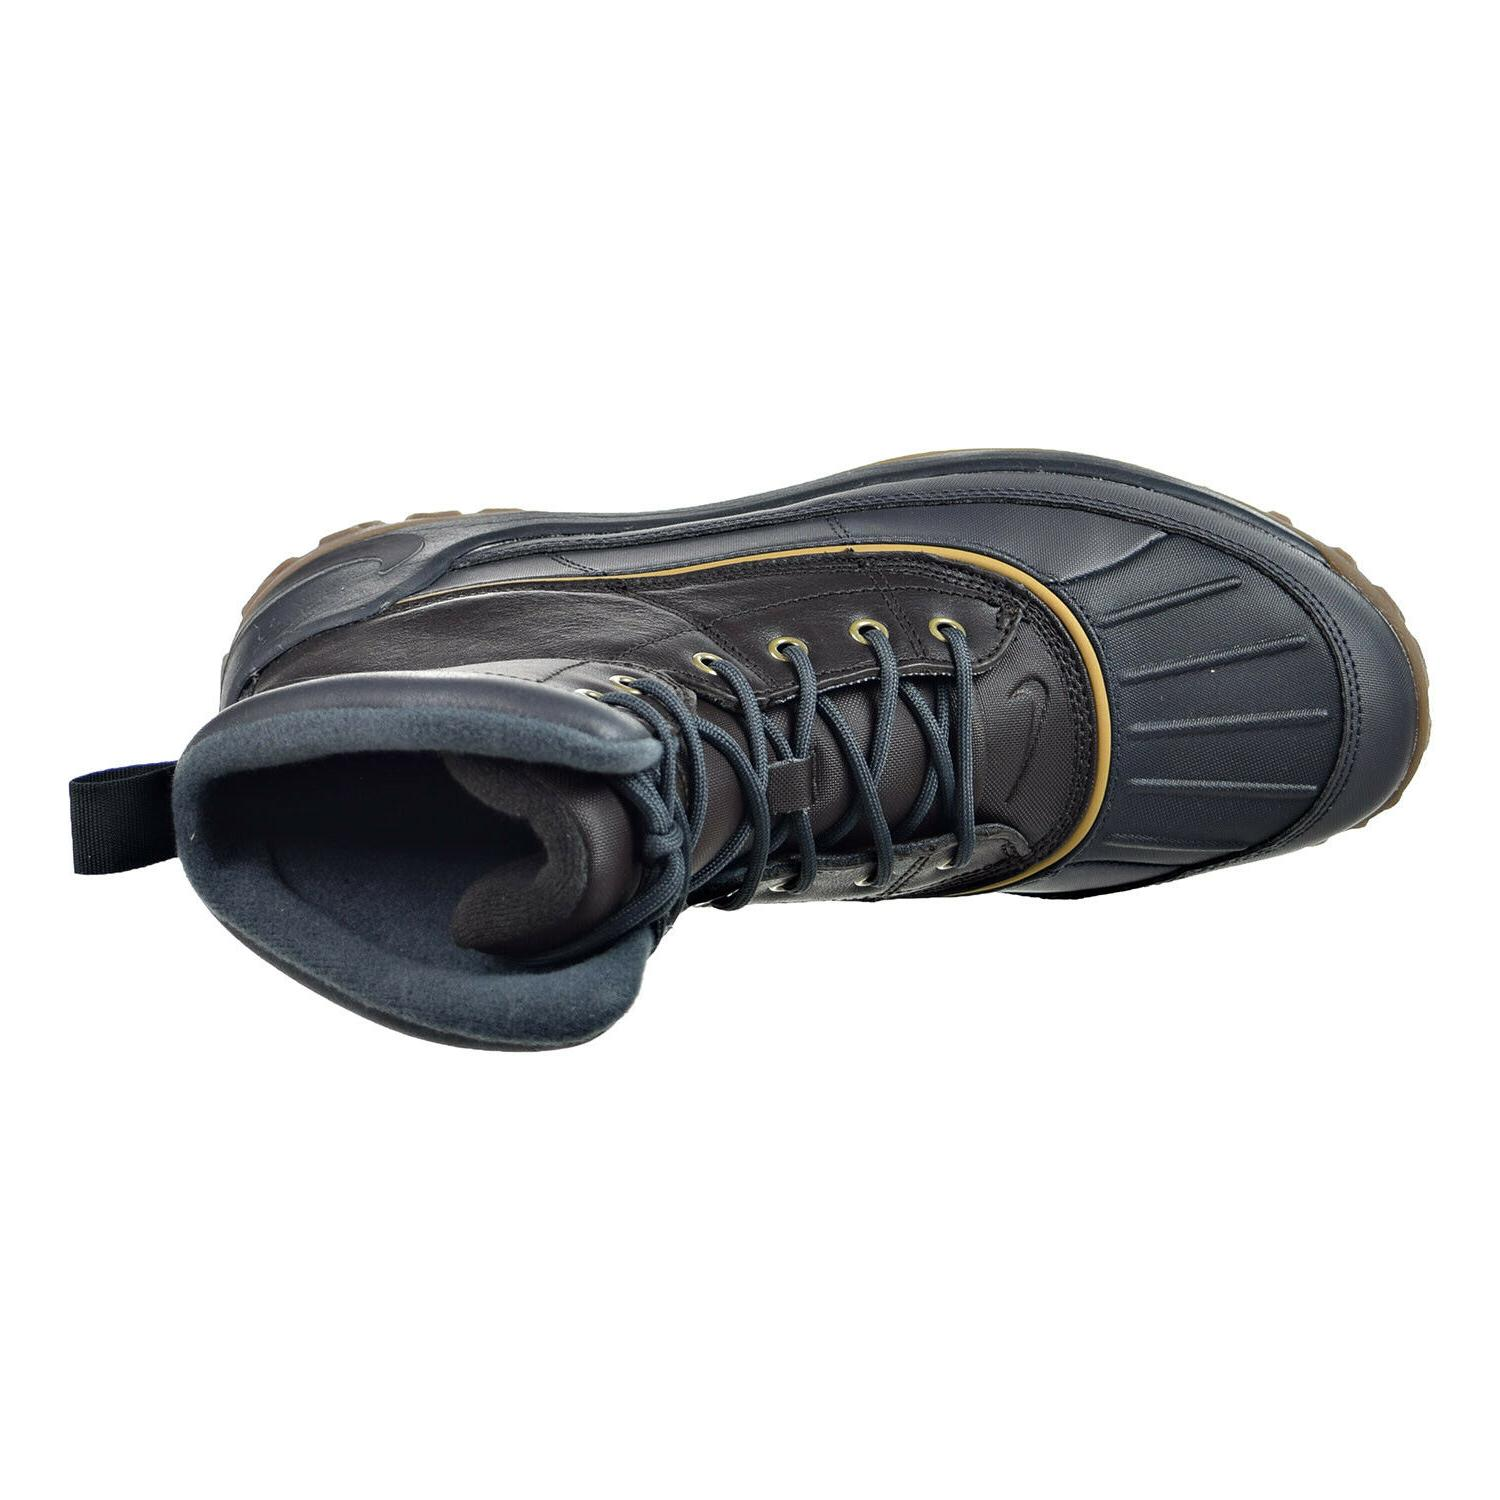 New Nike Shoes Snow Brown-Anthracite-Gold